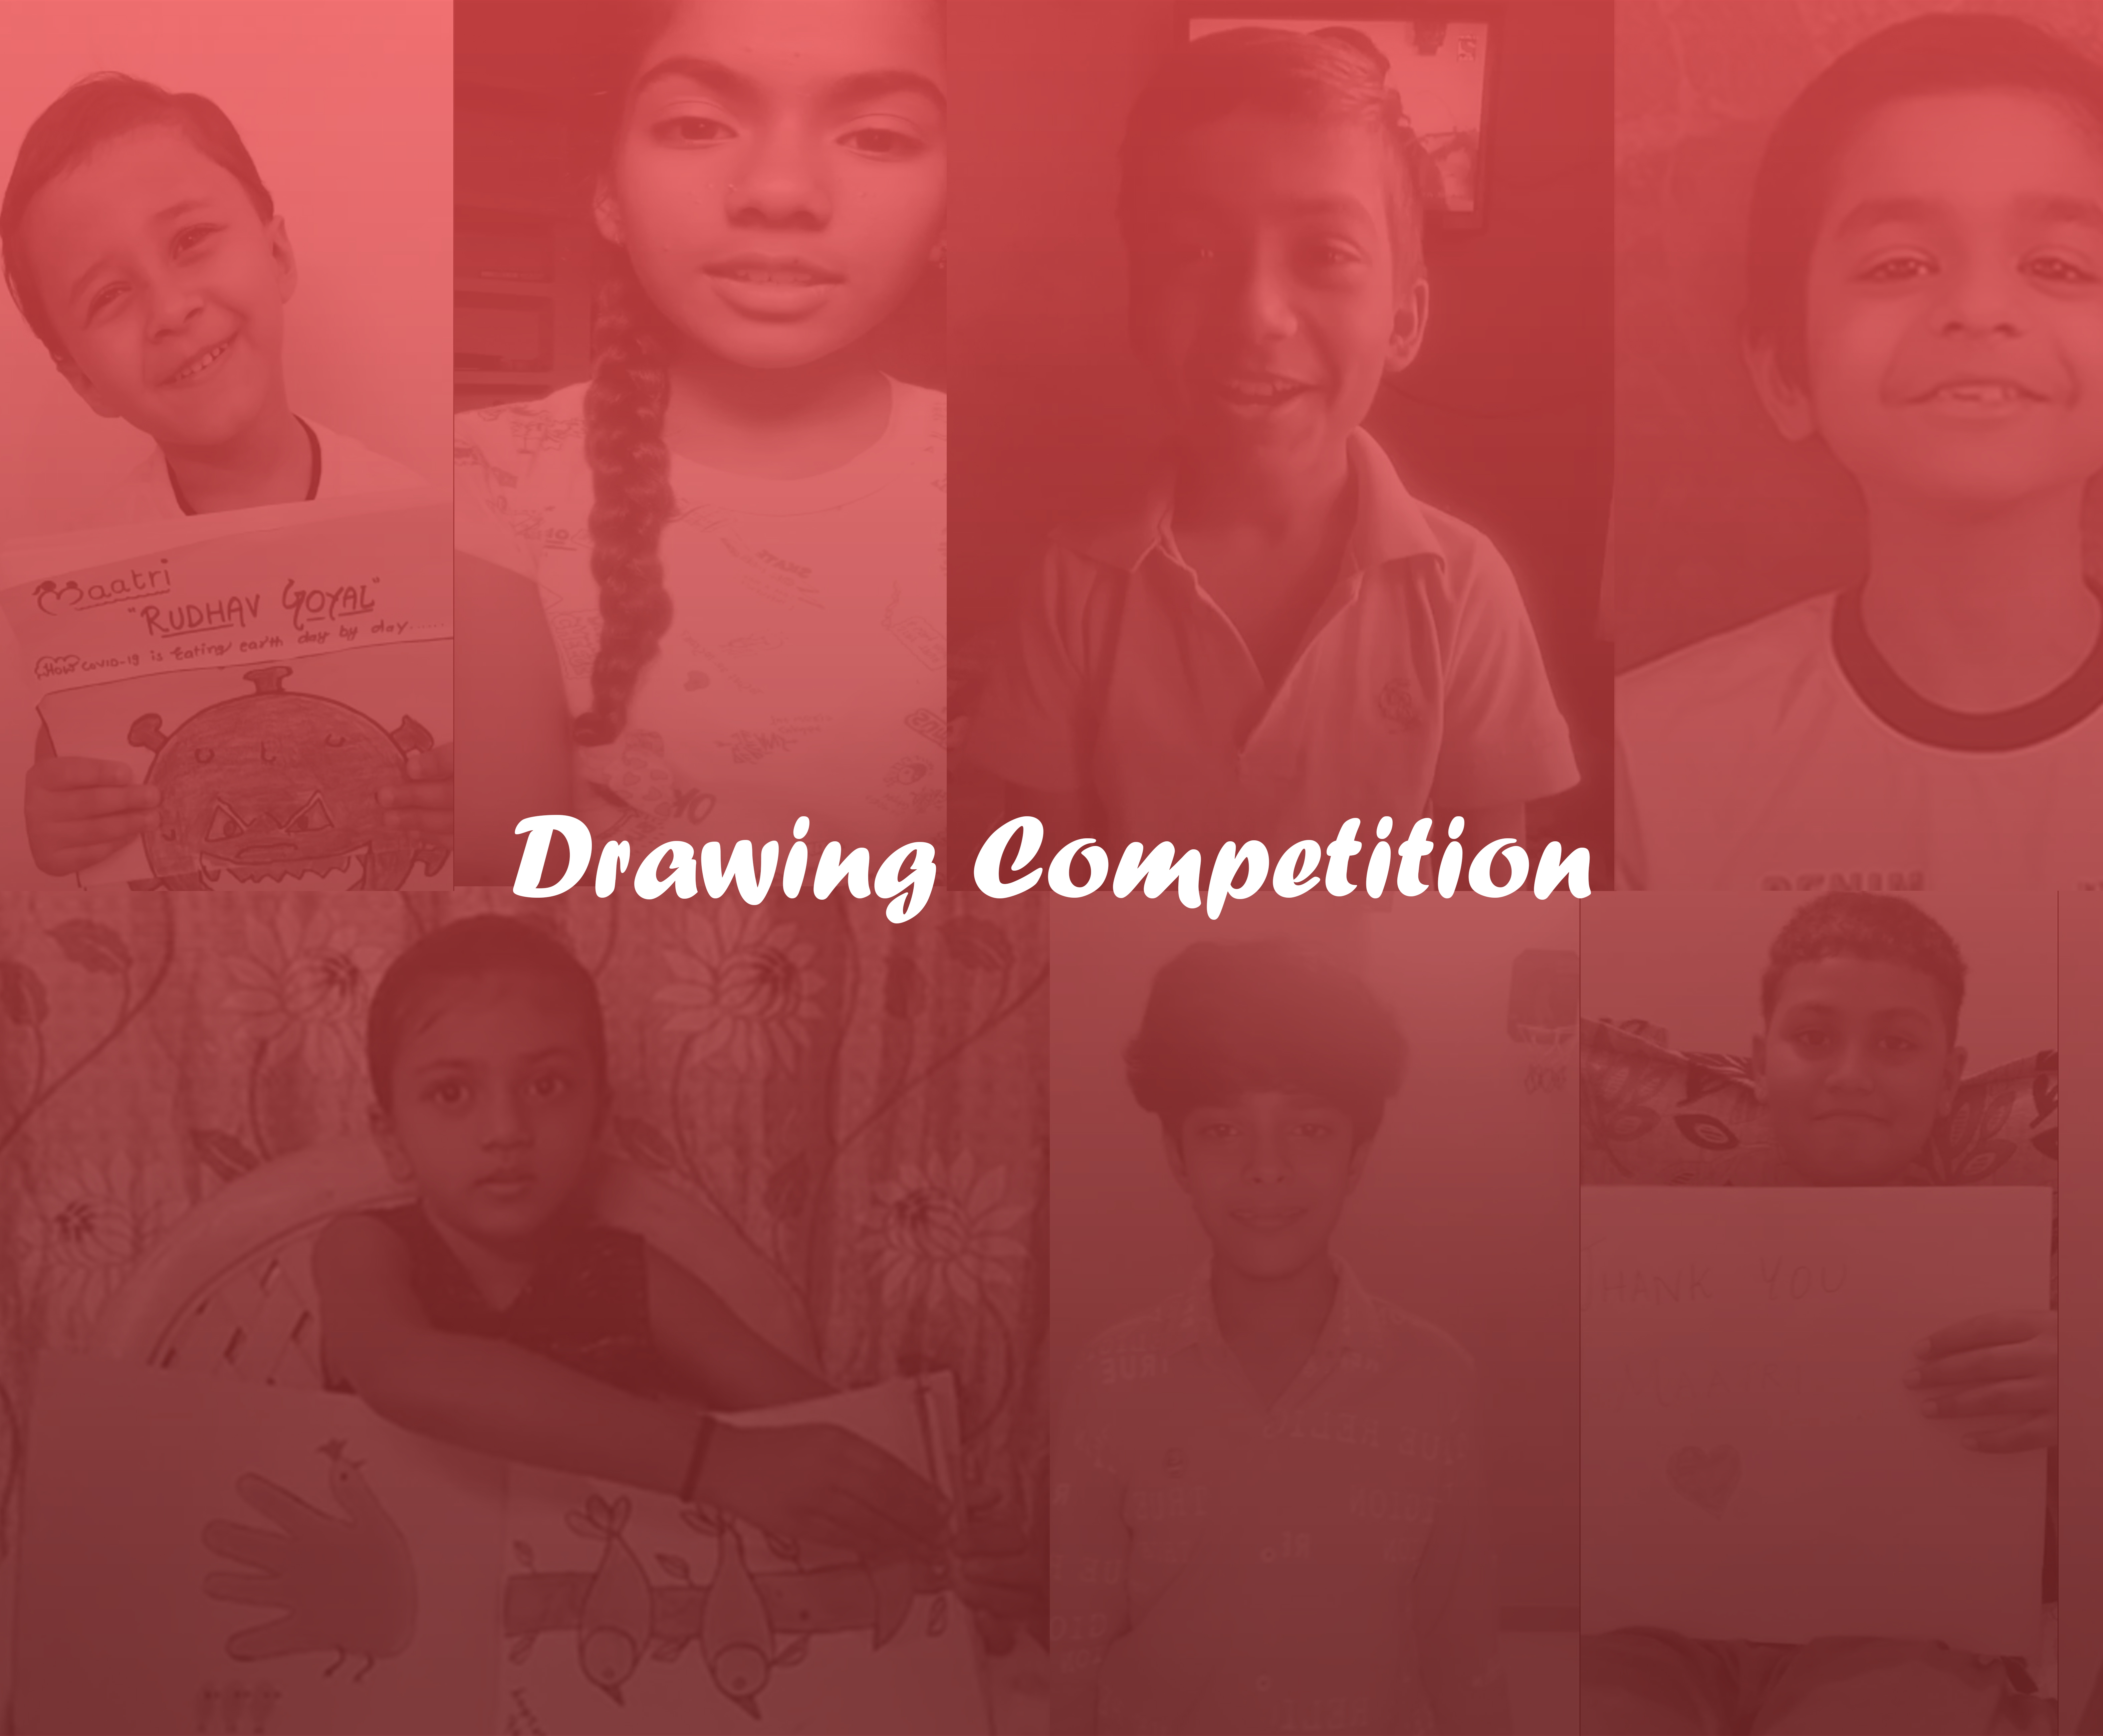 Maatri's Annual Children's Drawing Competition